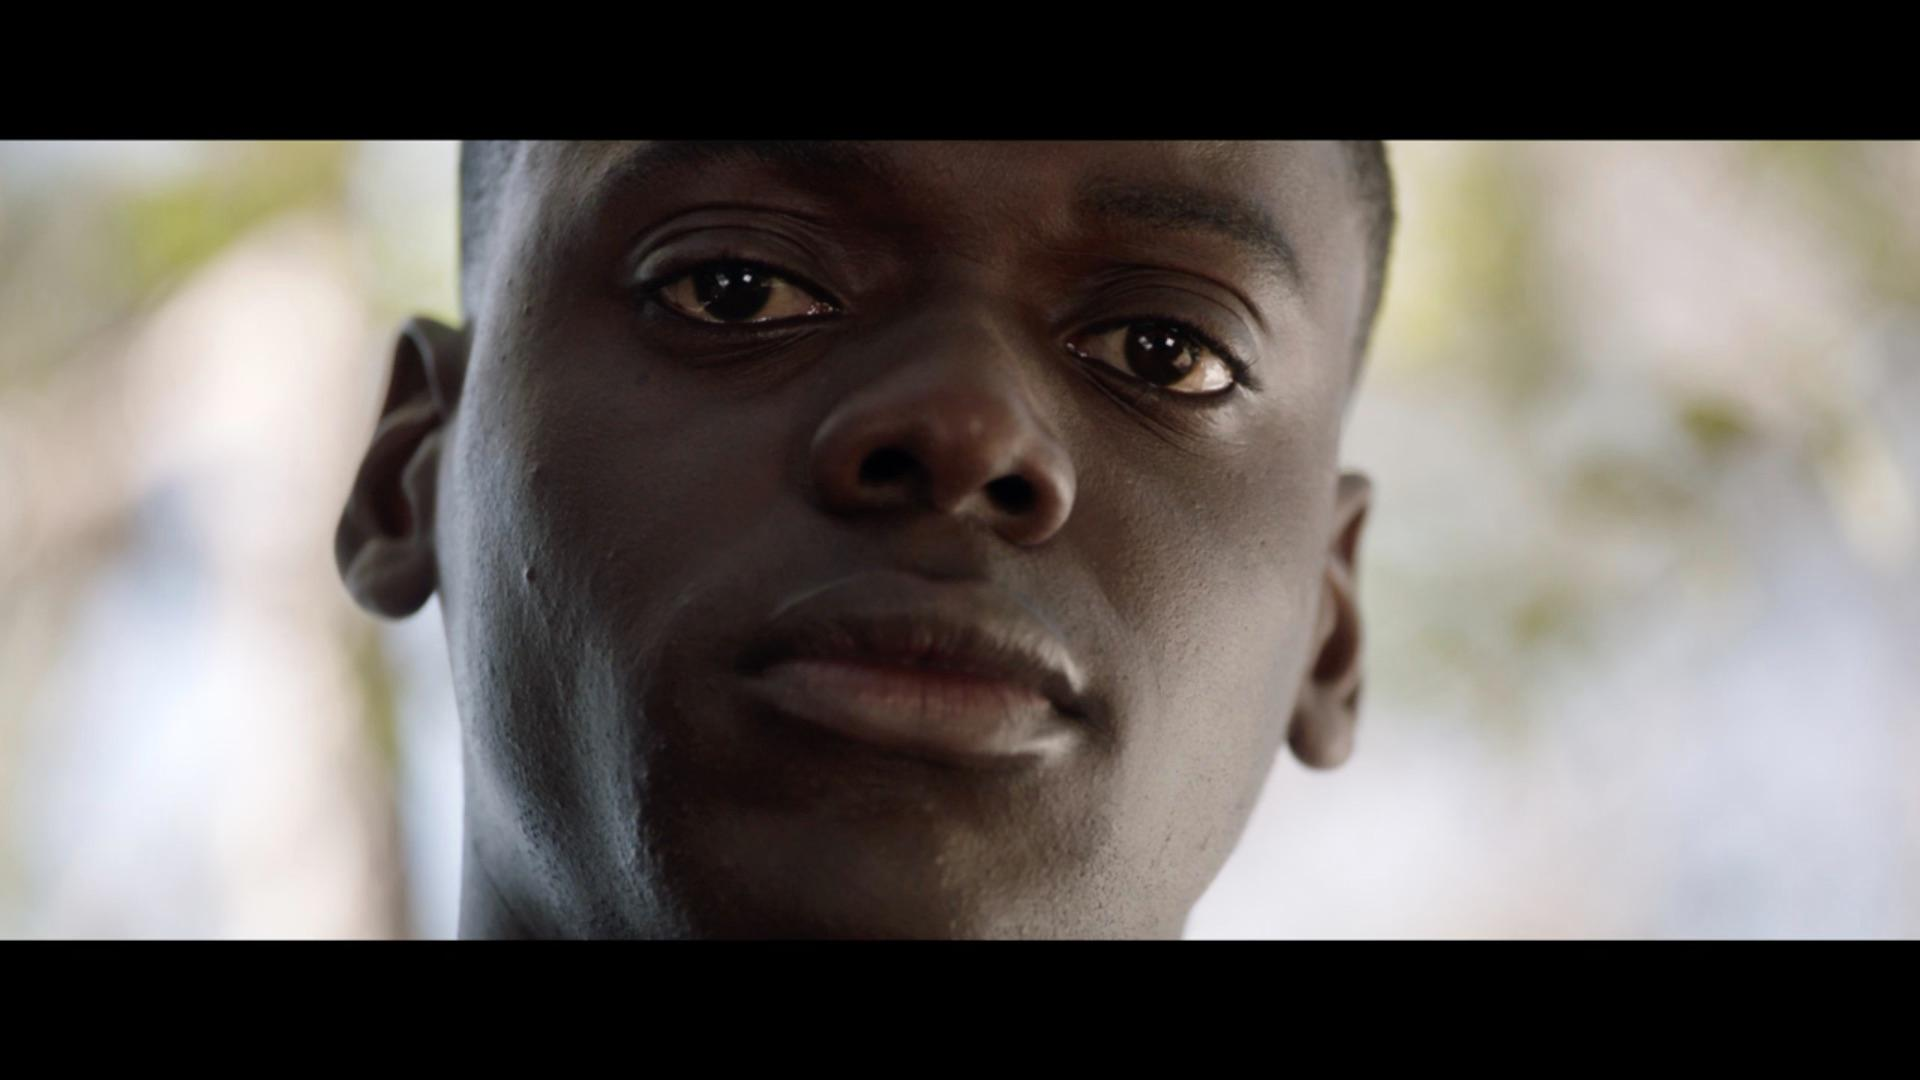 Jordan Peele's New Racially Charged Thriller 'Get Out' Looks Bizarre And Terrifying